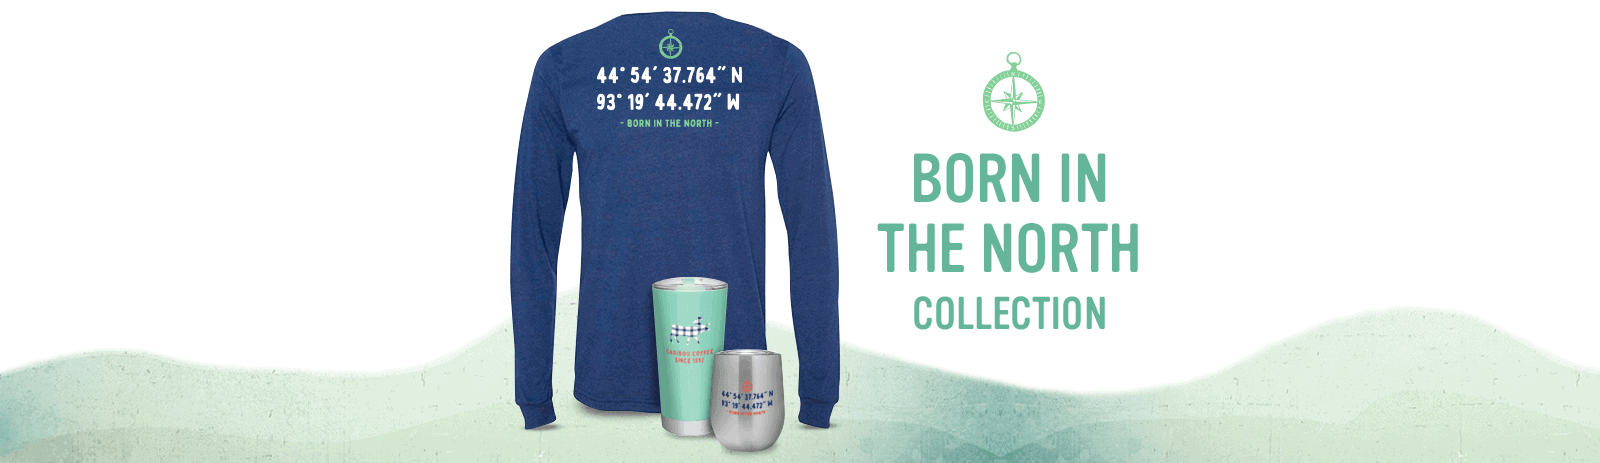 Born in the North collection